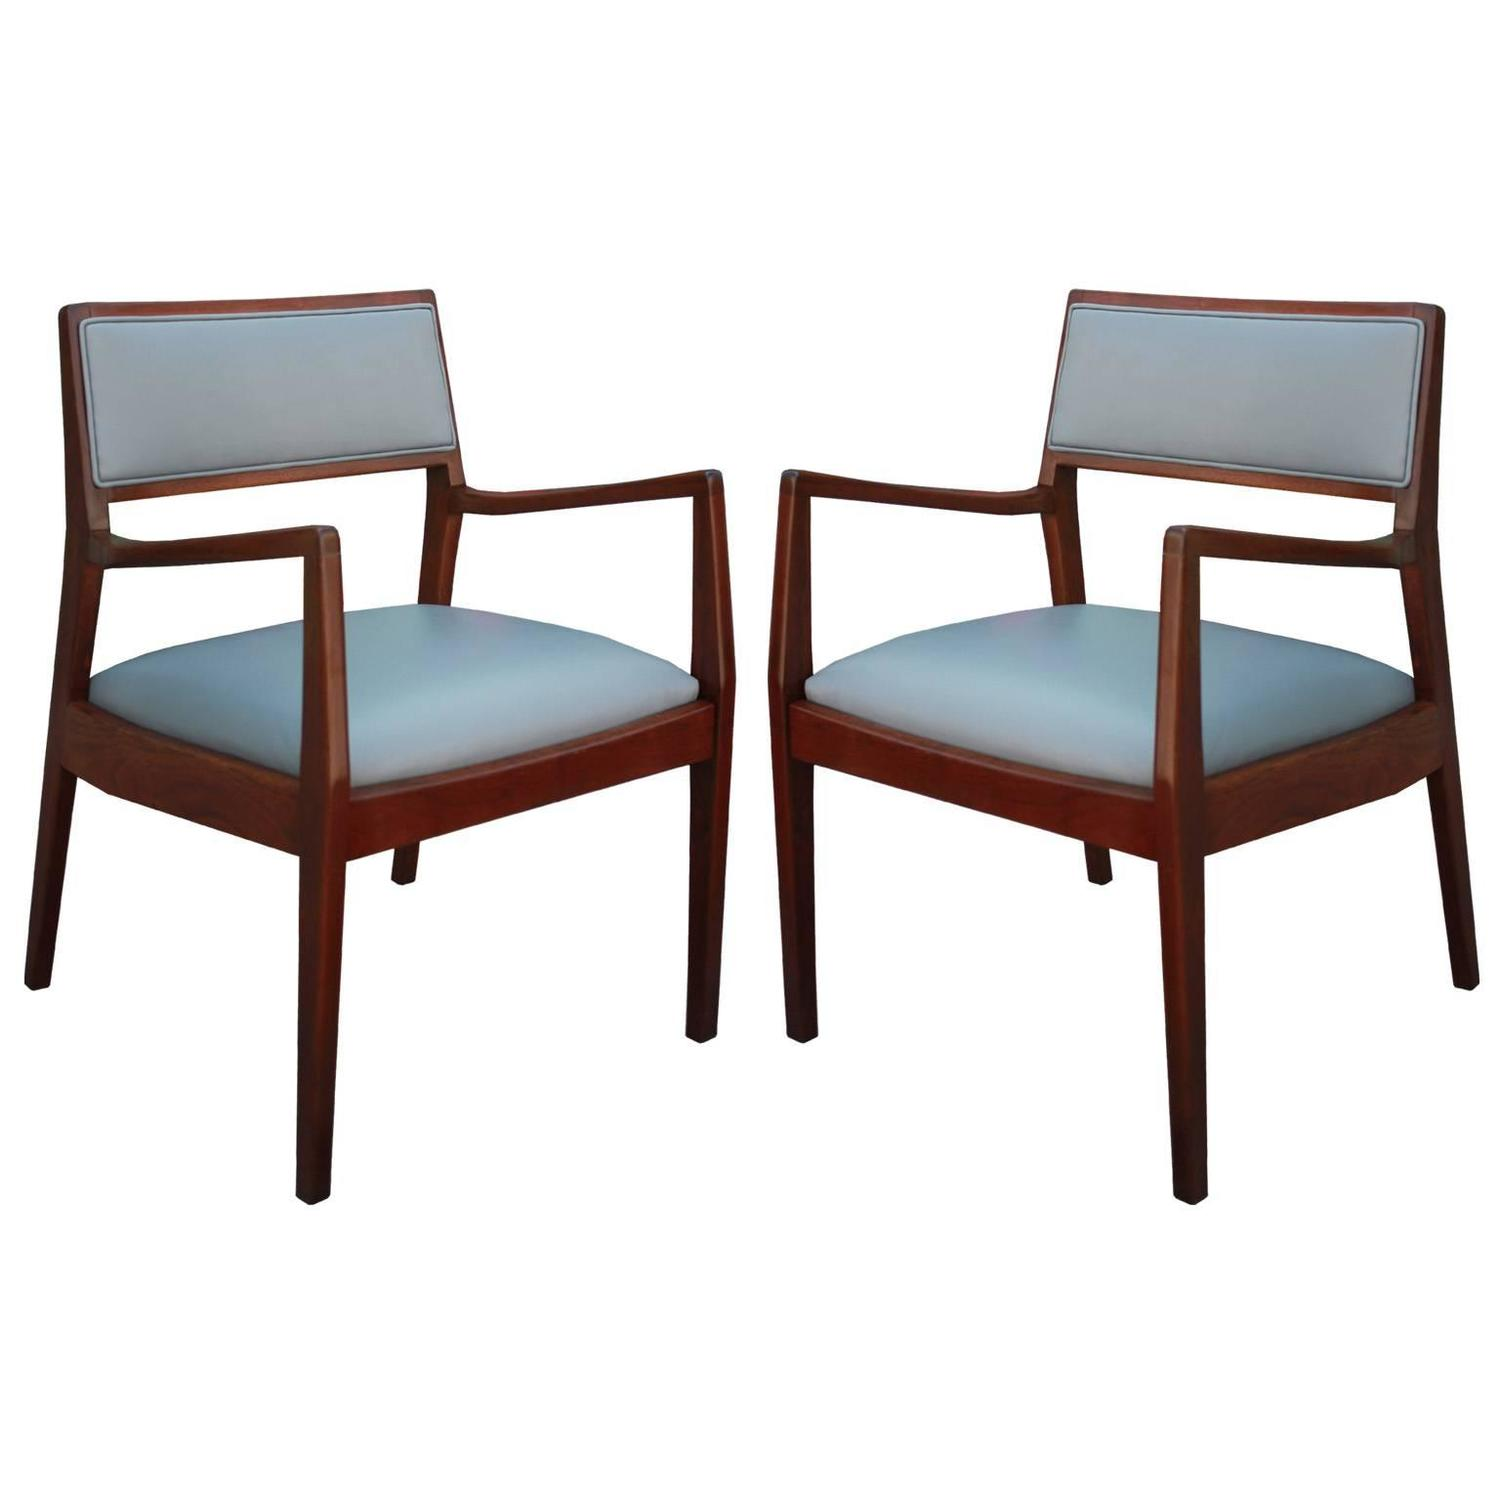 pair of walnut jens risom lounge chairs in grey leather at 1stdibs